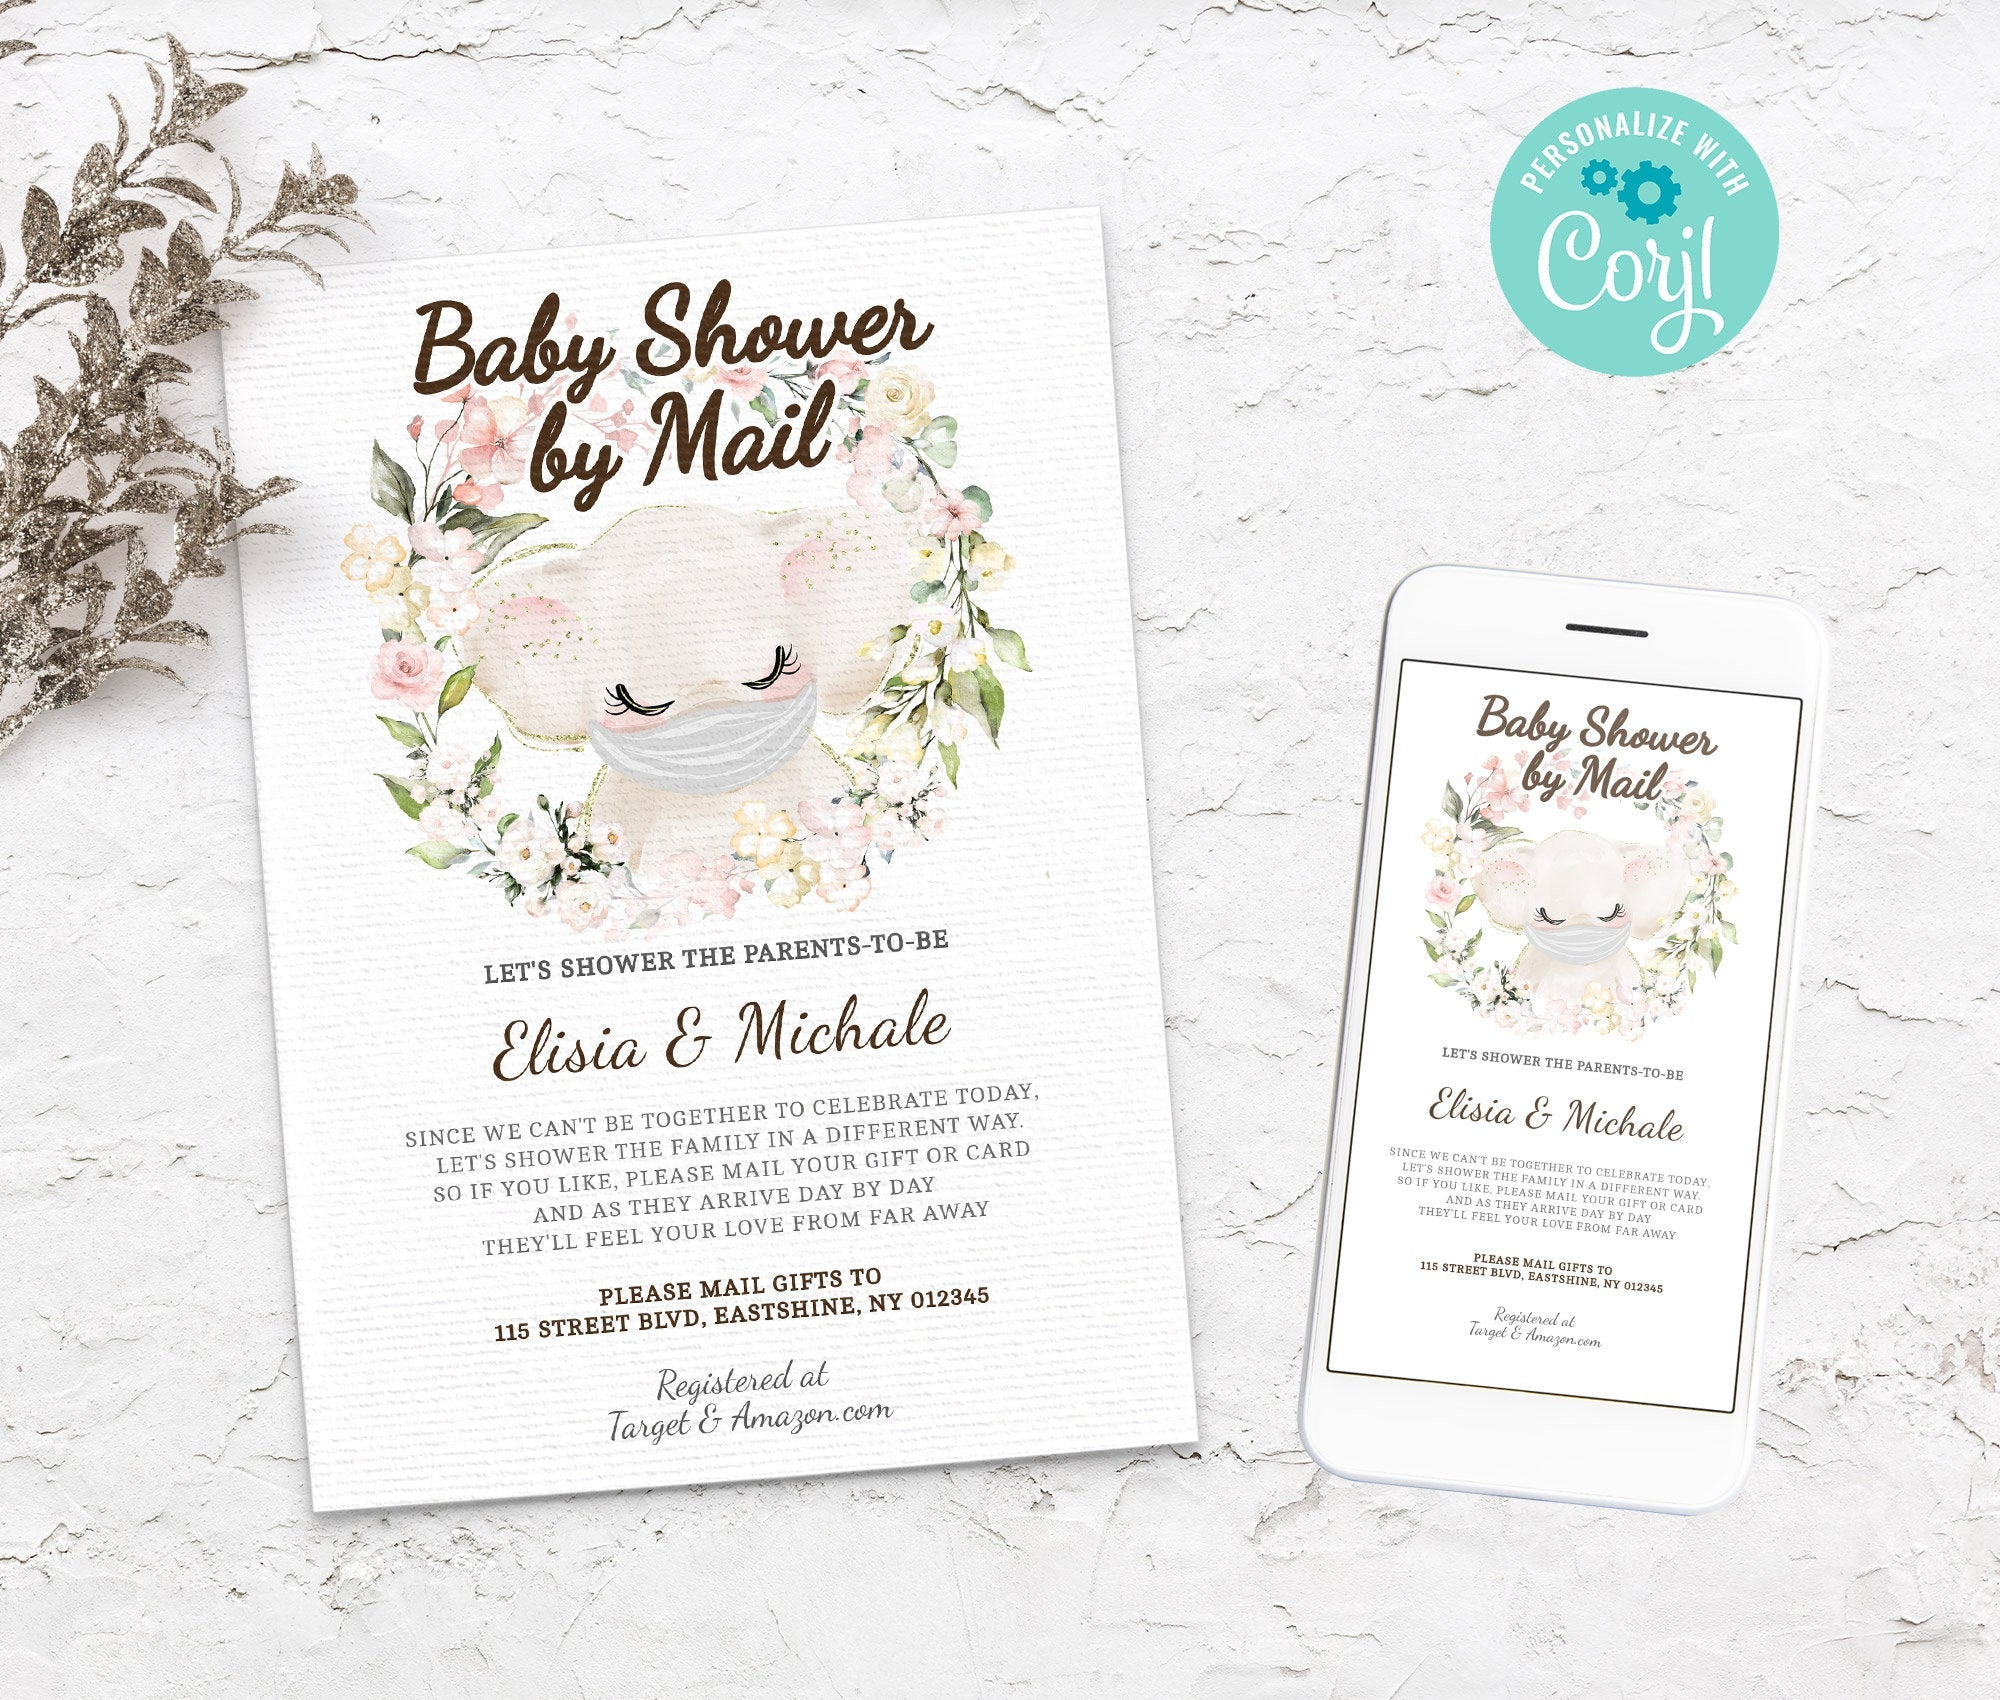 Baby Shower by Mail Elephant Template - Baby shower invitation - Shower by Mail, Shower invite,  Editable Text, Instant Download,3614 BS3601